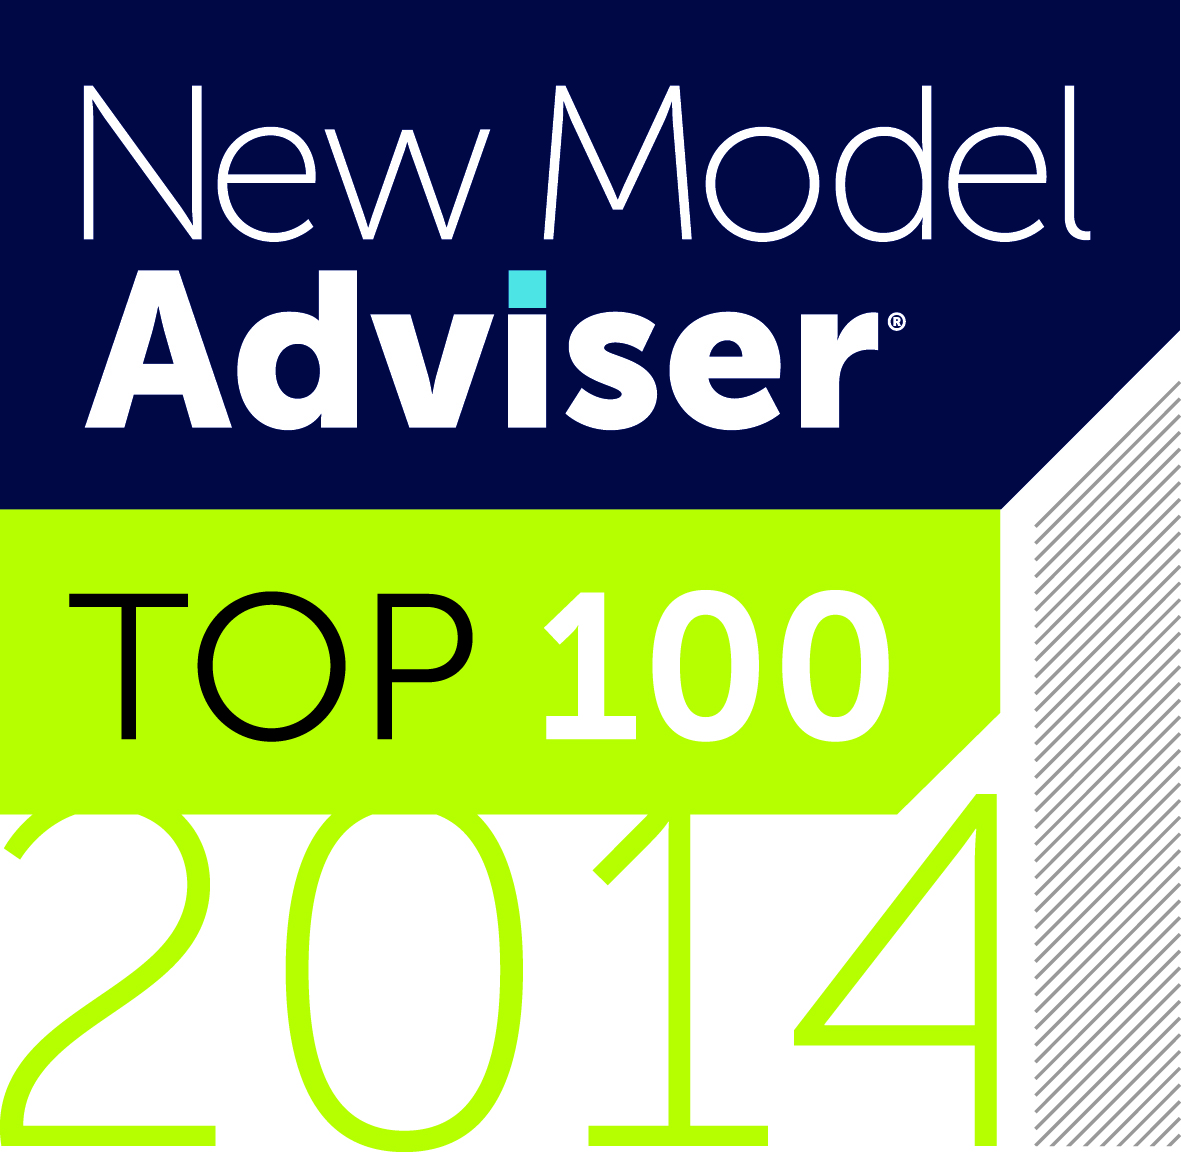 New Model Adviser top 100 2014